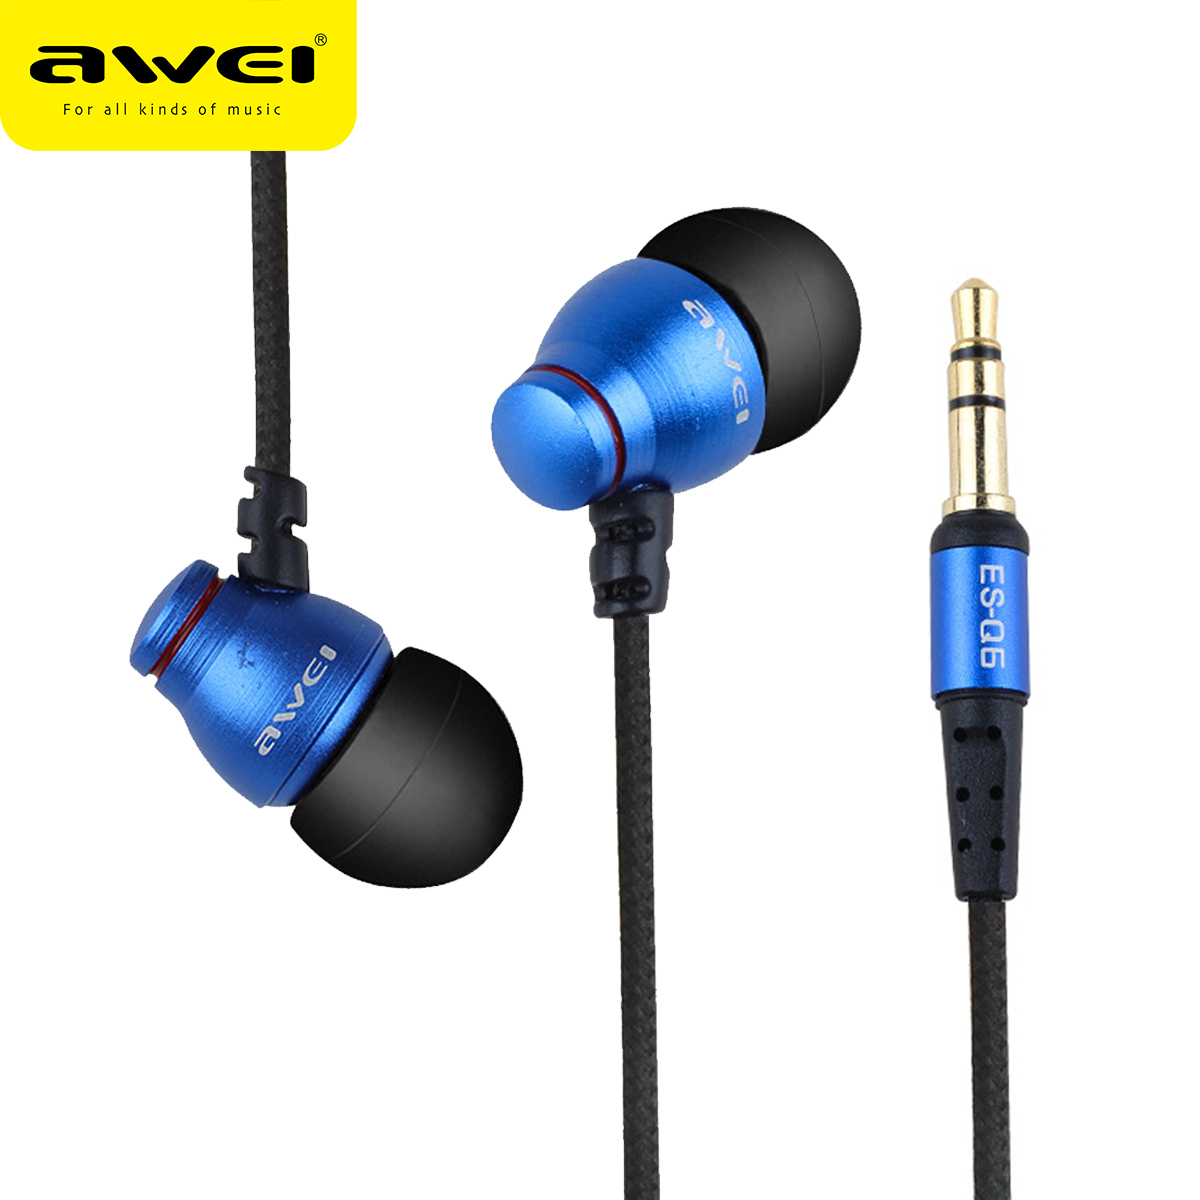 AWEI Q6 Wired Headphone Stereo In-Ear Earphone Super Bass HIFI Sound Headset For Noise Canceling Headphone Phone fone de ouvido baseus h03 in ear wired earphone headphone stereo hifi in line headset with mic for iphone xiaomi fone de ouvido kulakl k